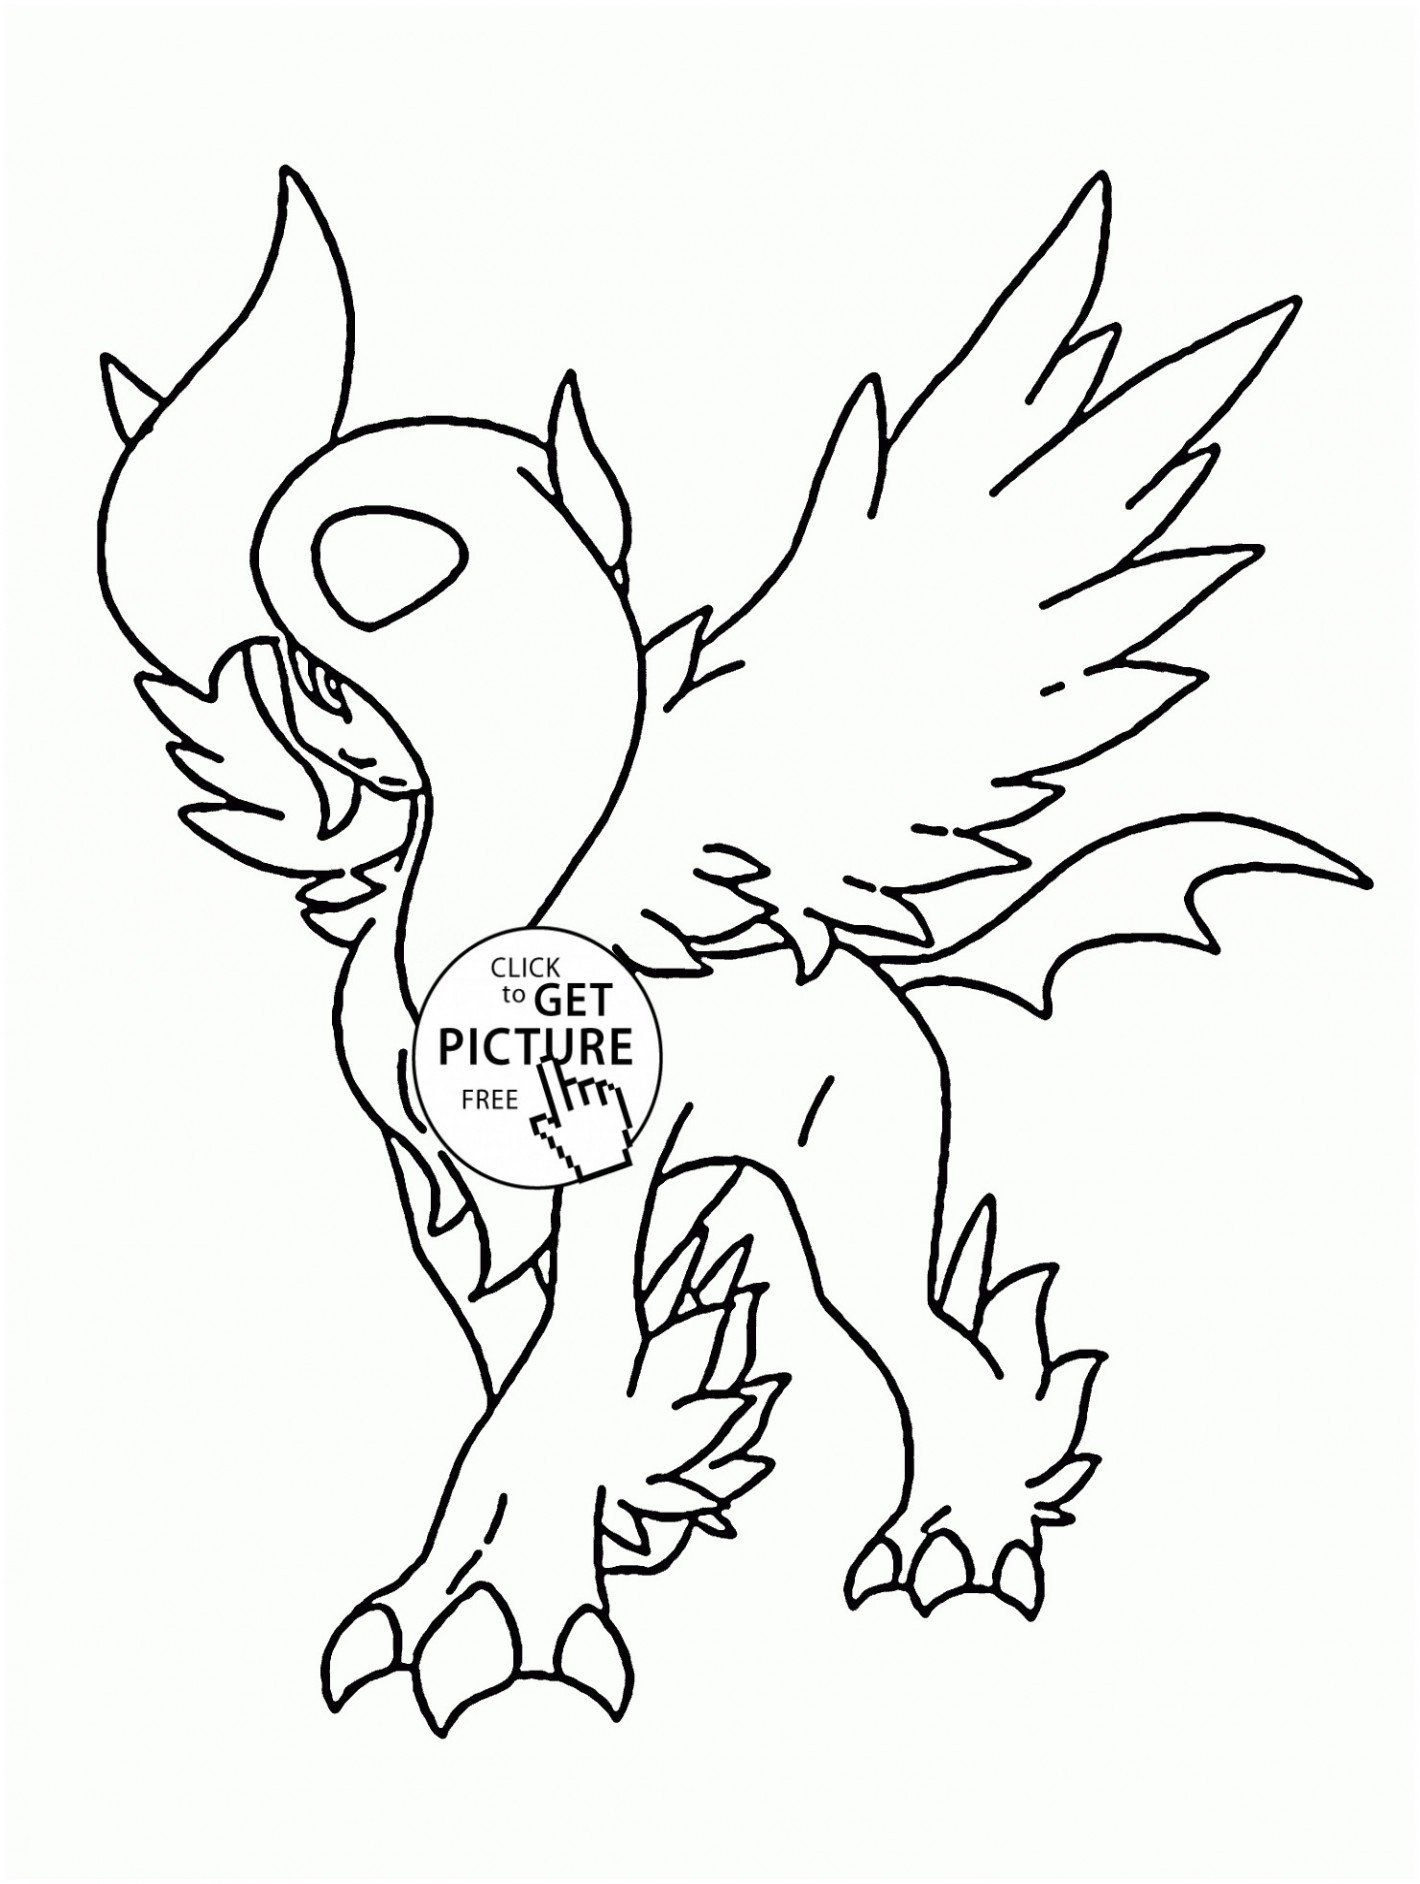 Pokemon Printable Coloring Pages New Pokemon Coloring Page Best Vases Flower Vase Coloring Page Pages In 2020 Pokemon Coloring Pages Pokemon Coloring Easy Drawings